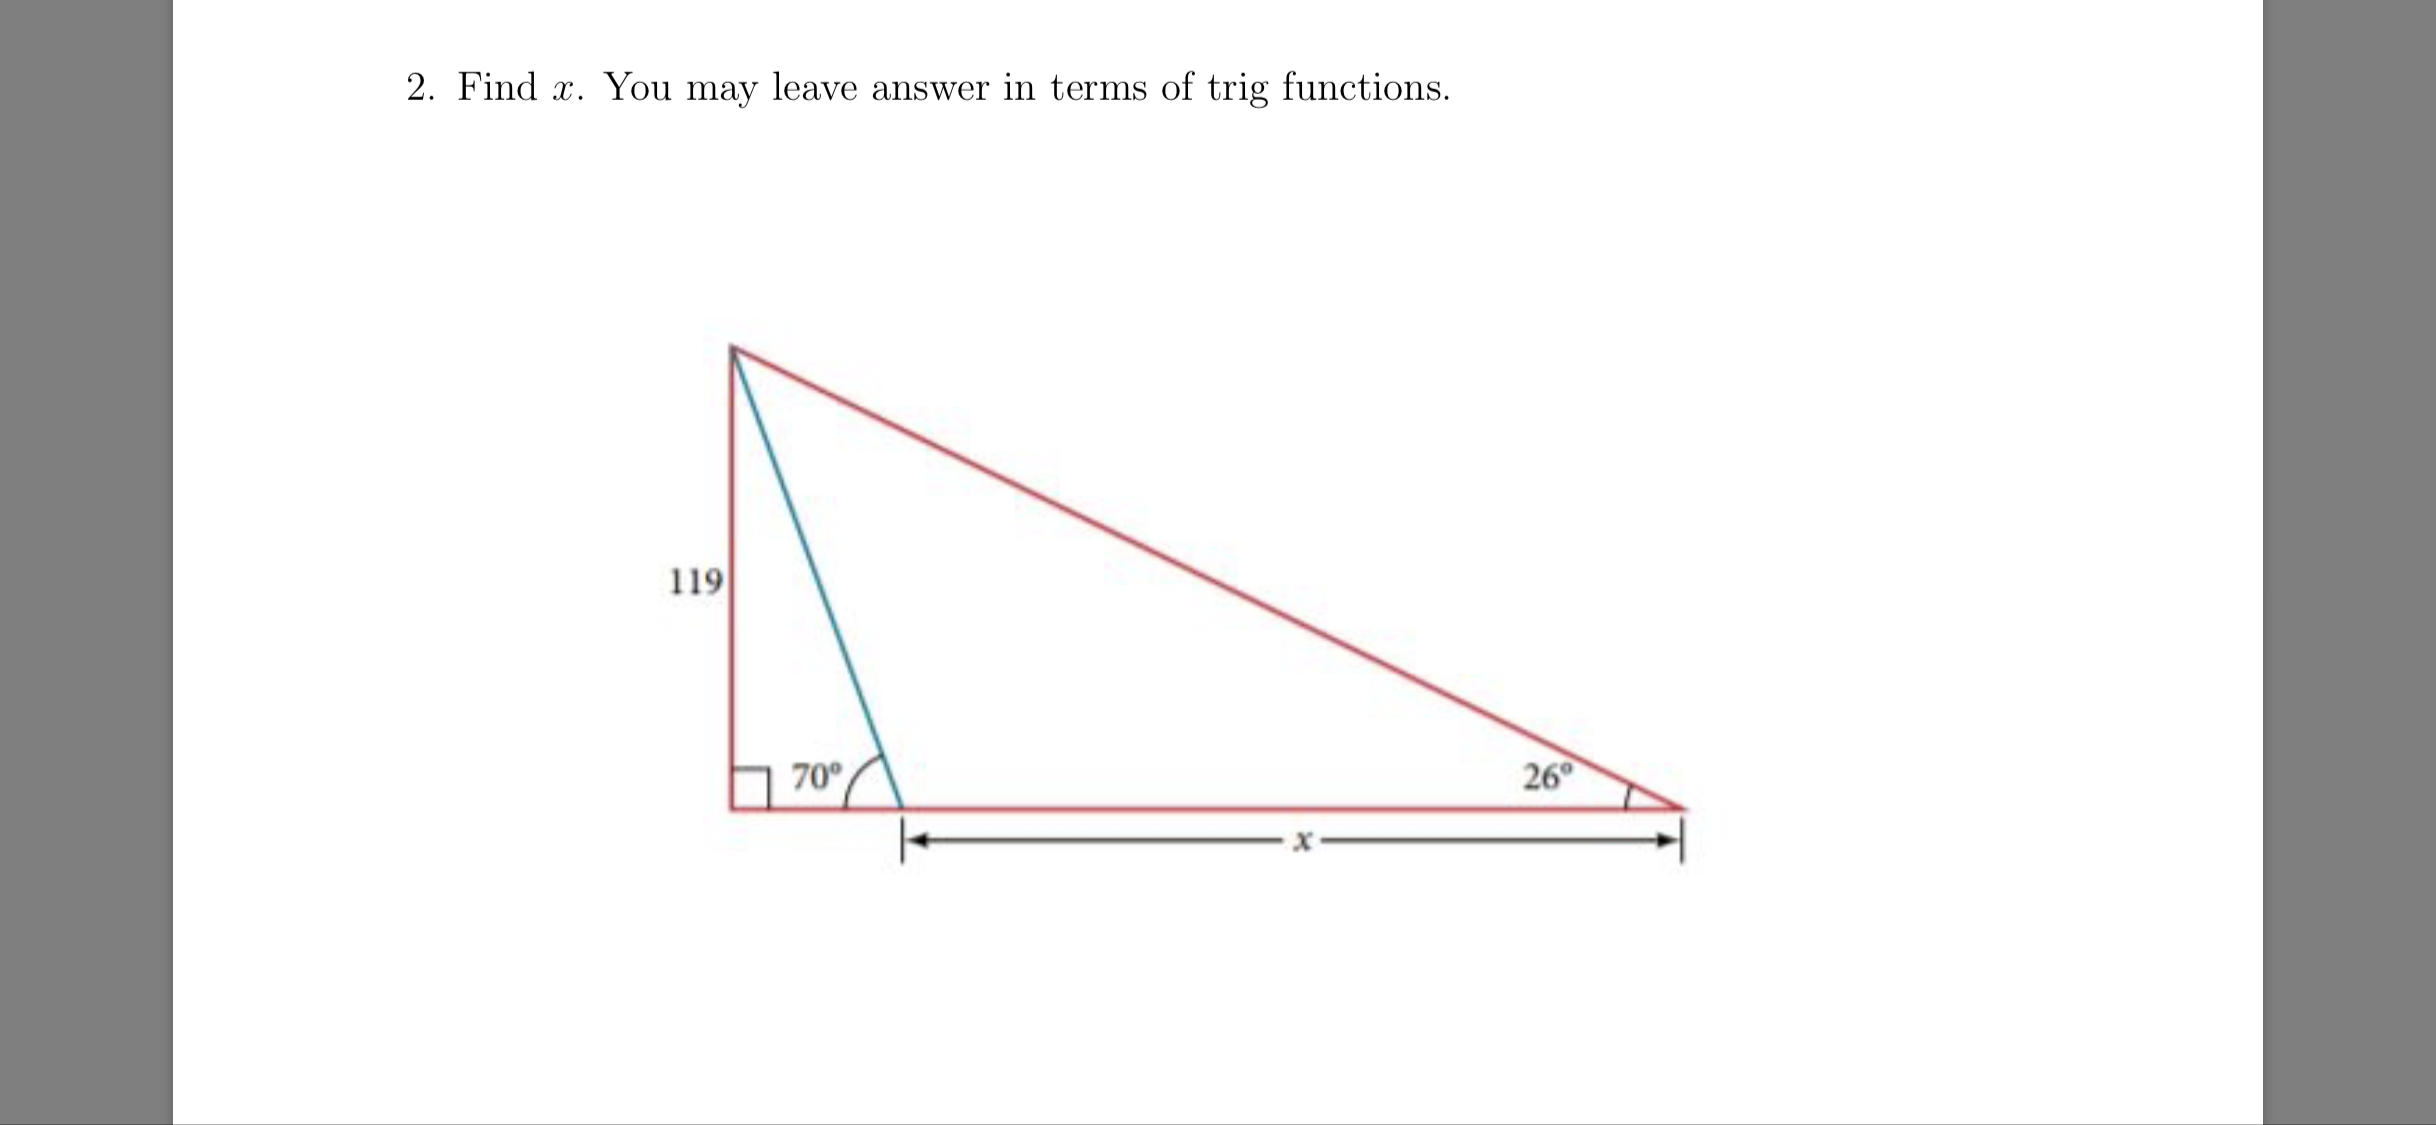 2. Find z. You may leave answer in terms of trig functions. 119 hed 70° 26°